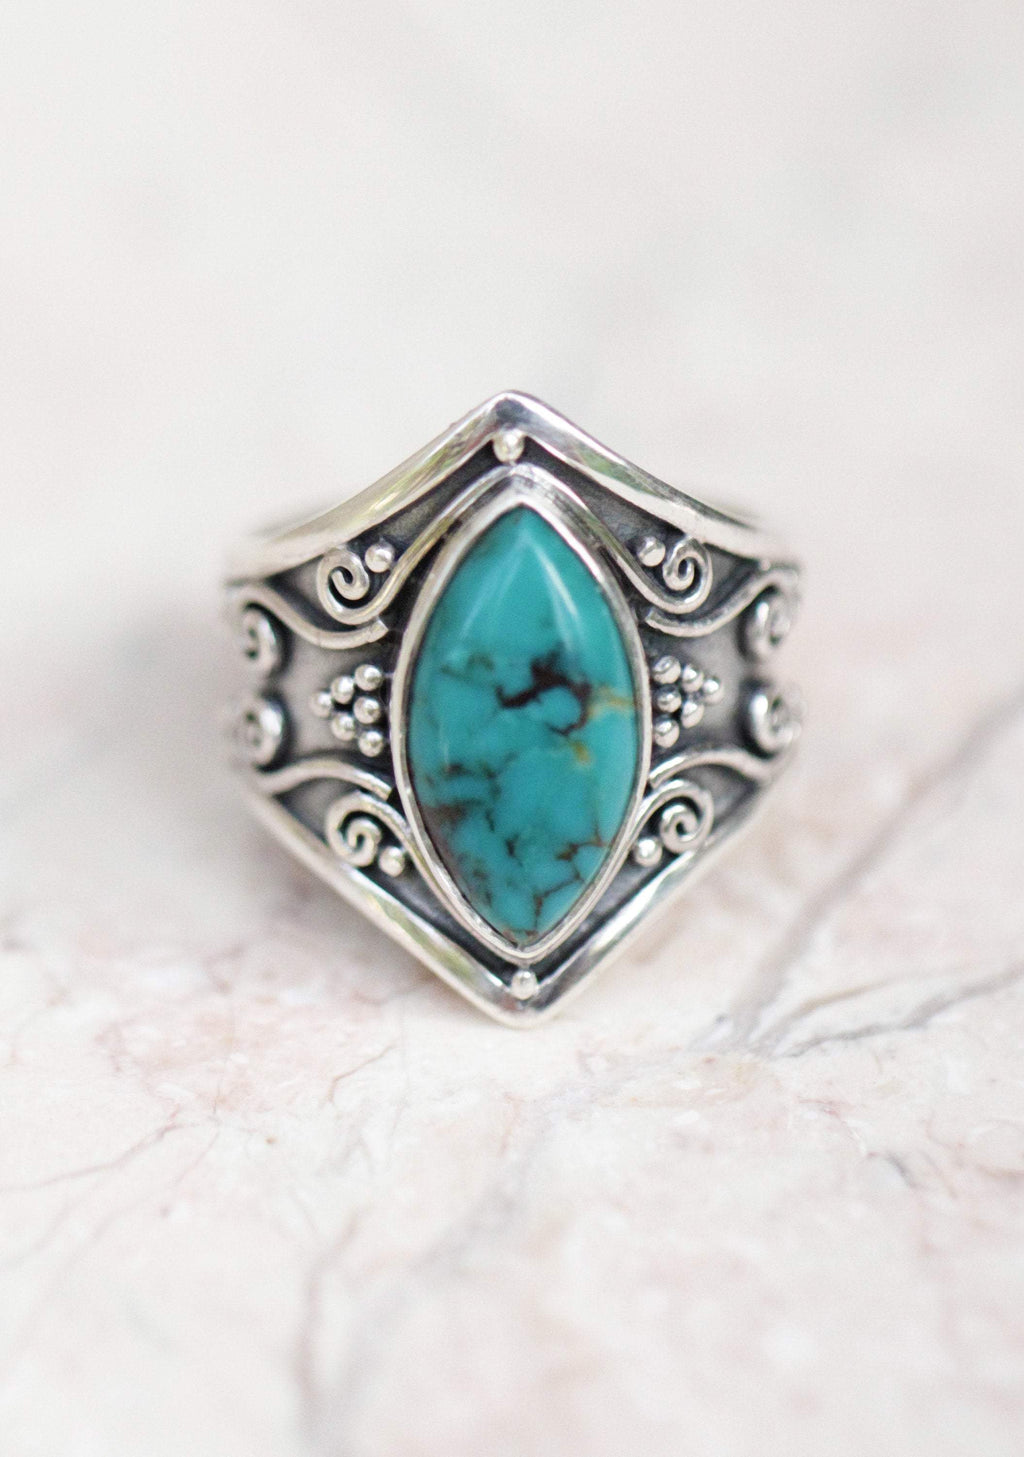 Turquoise Gemstone Ring Solid 925 Sterling Silver Band Turquoise Ring Size V937